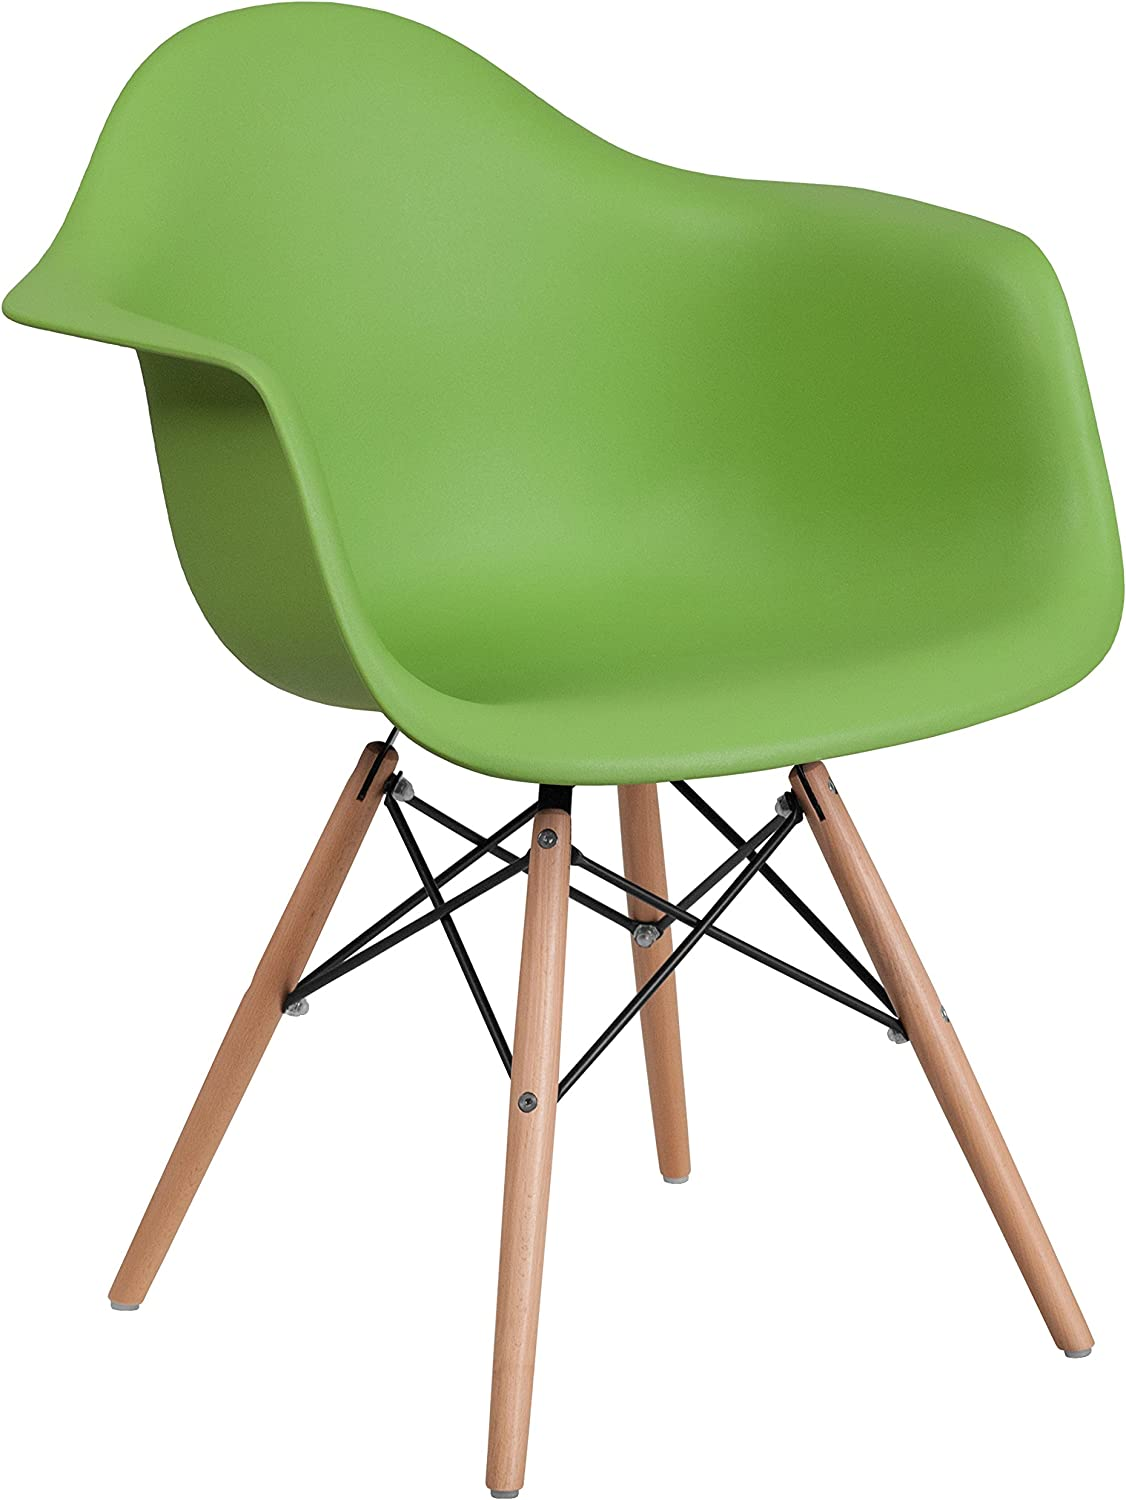 Flash Furniture Alonza Series Green Plastic Chair with Wooden Legs